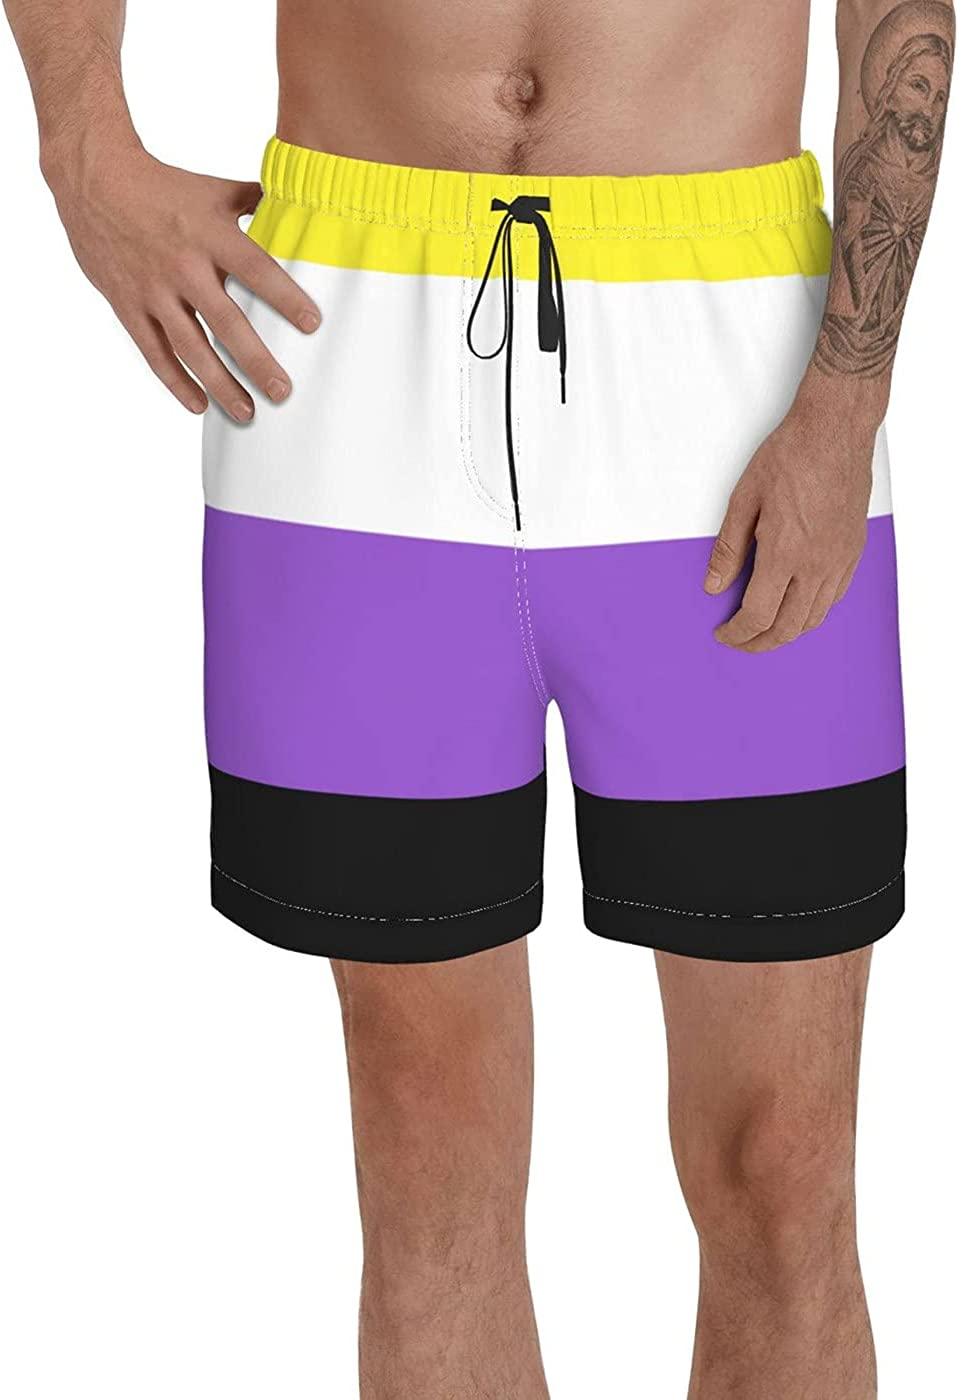 Count Binary Pride Flag Men's 3D Printed Funny Summer Quick Dry Swim Short Board Shorts with